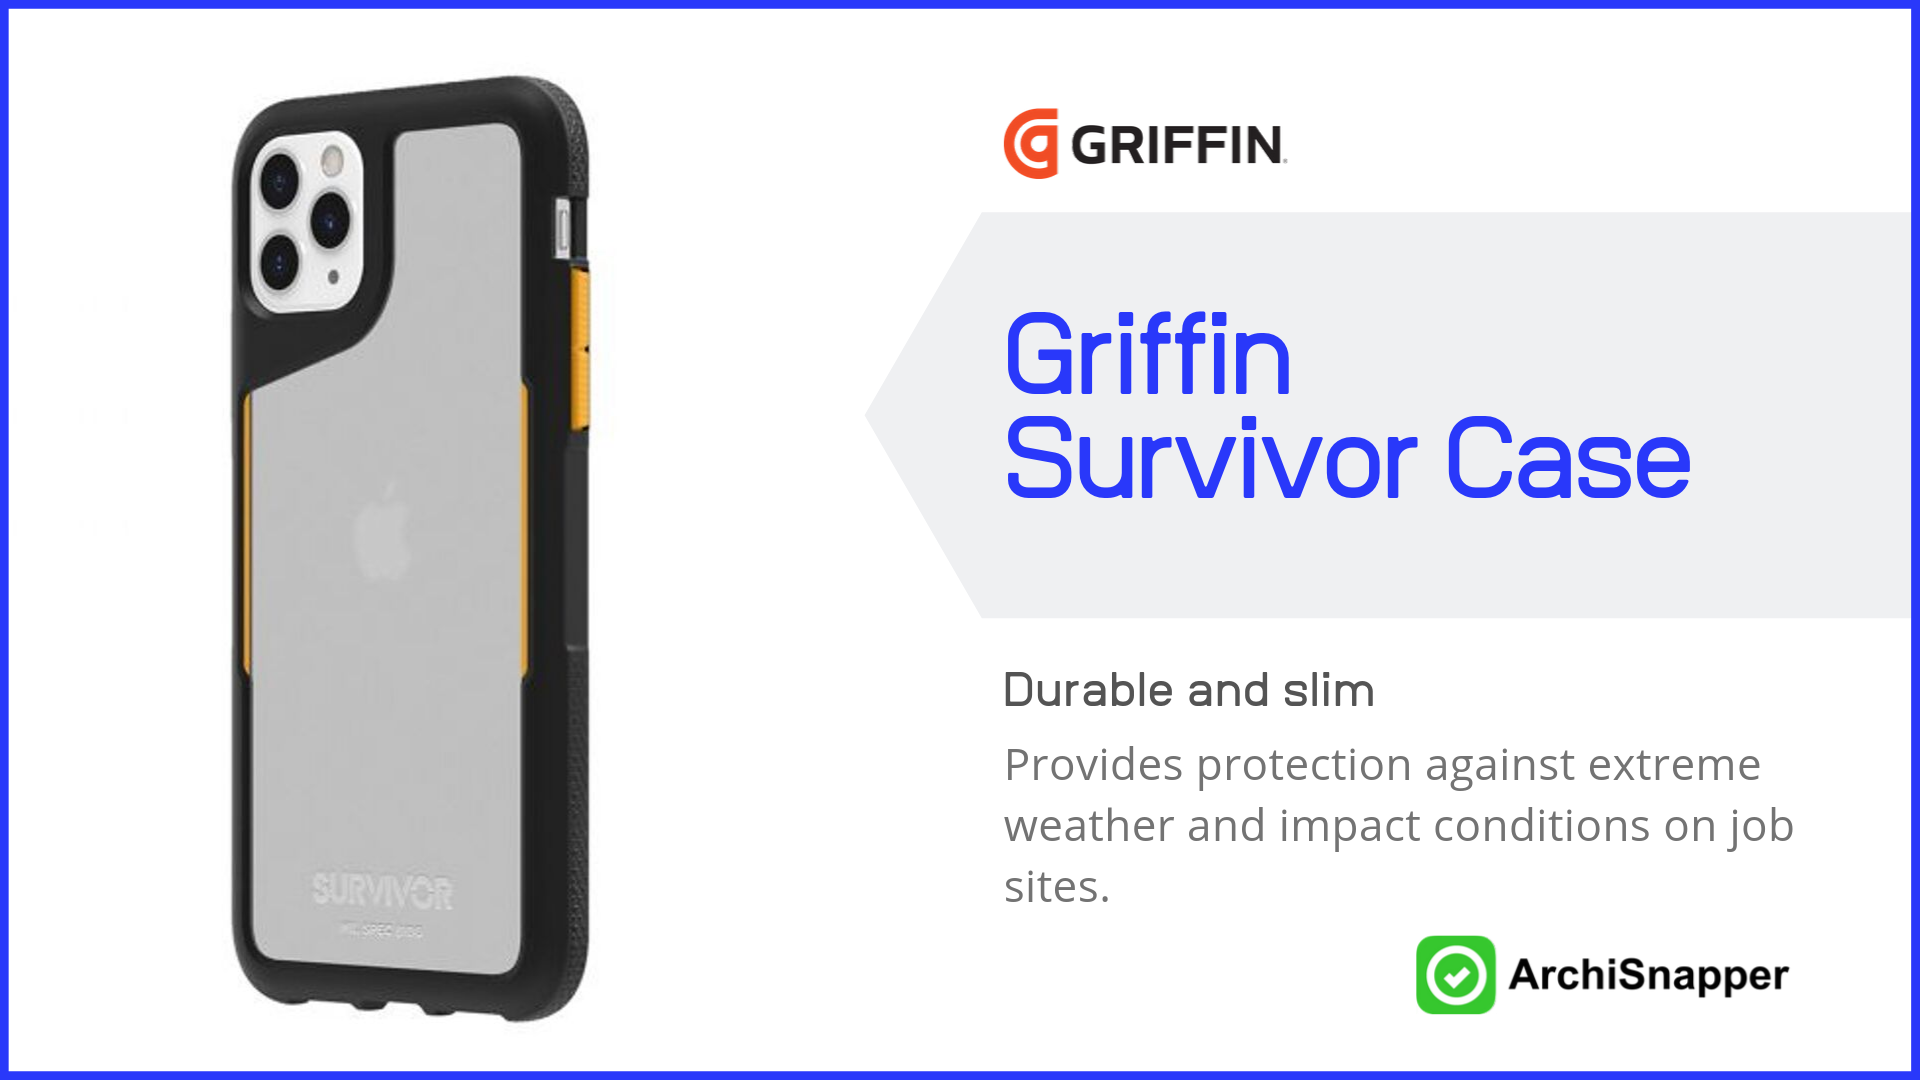 Griffin Survivor case | Top Tech for Architects Presented by Archisnapper